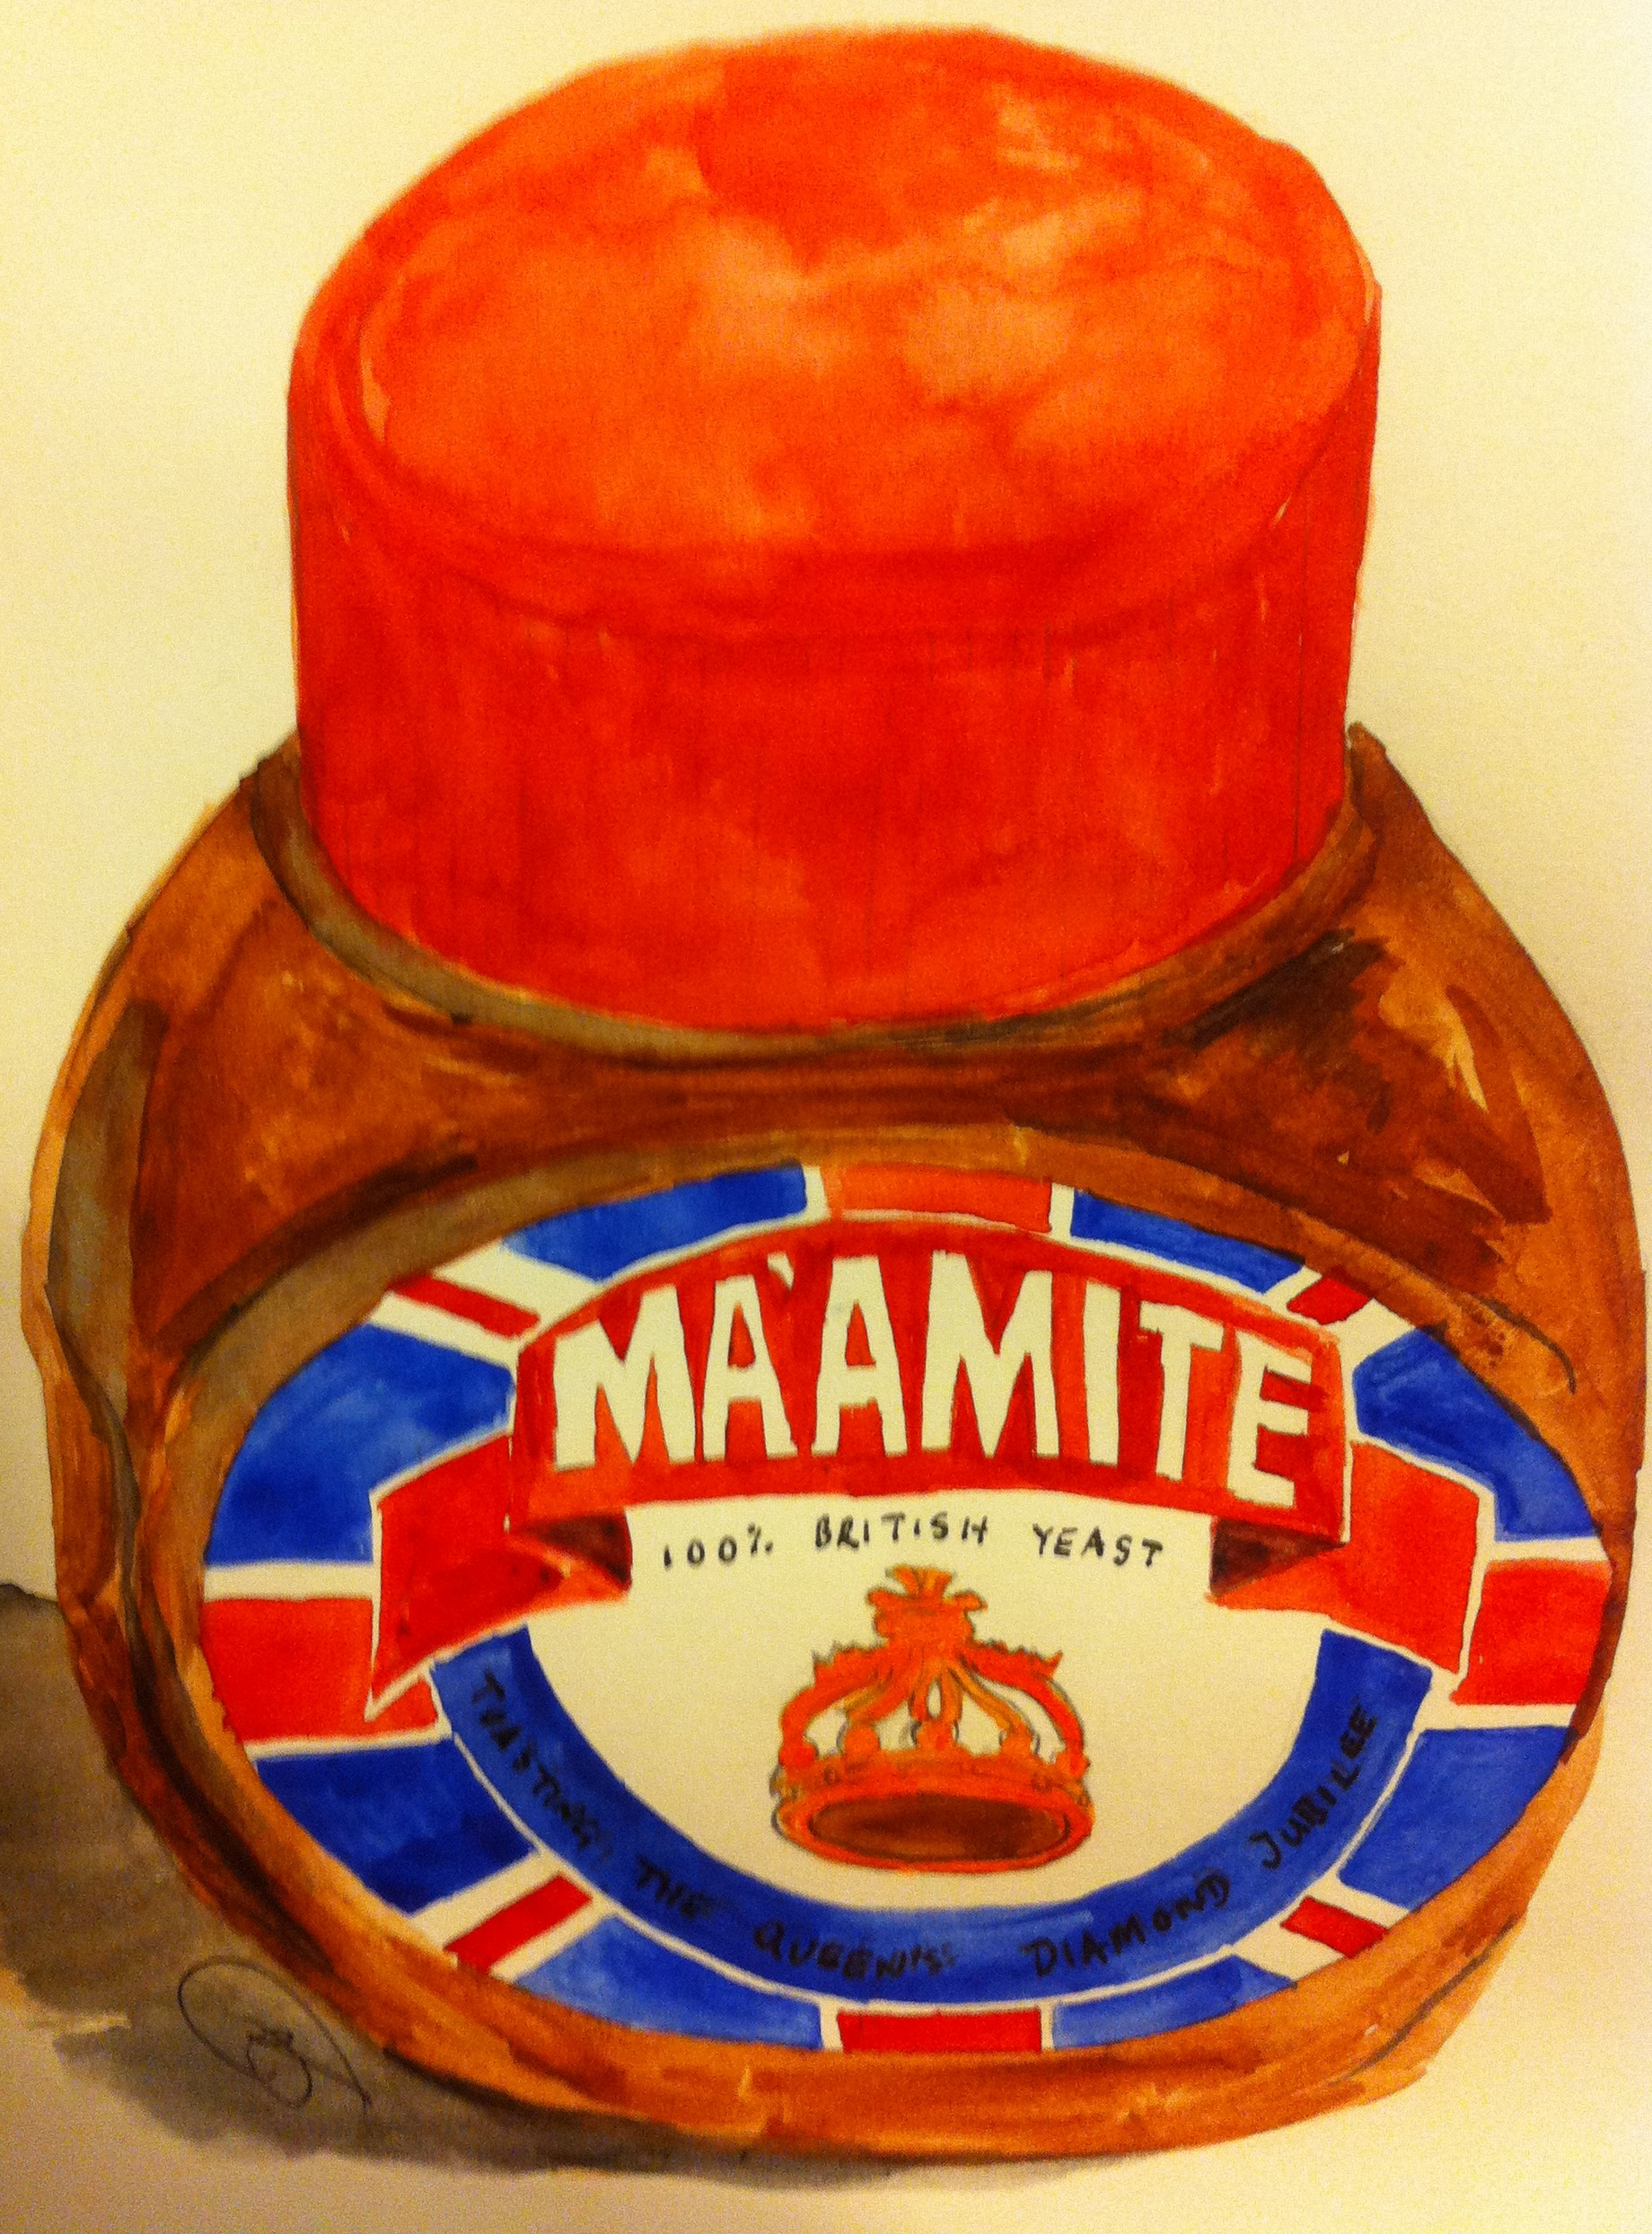 Marmite Toasting the Queens Diamond Jubilee with Ma'amite